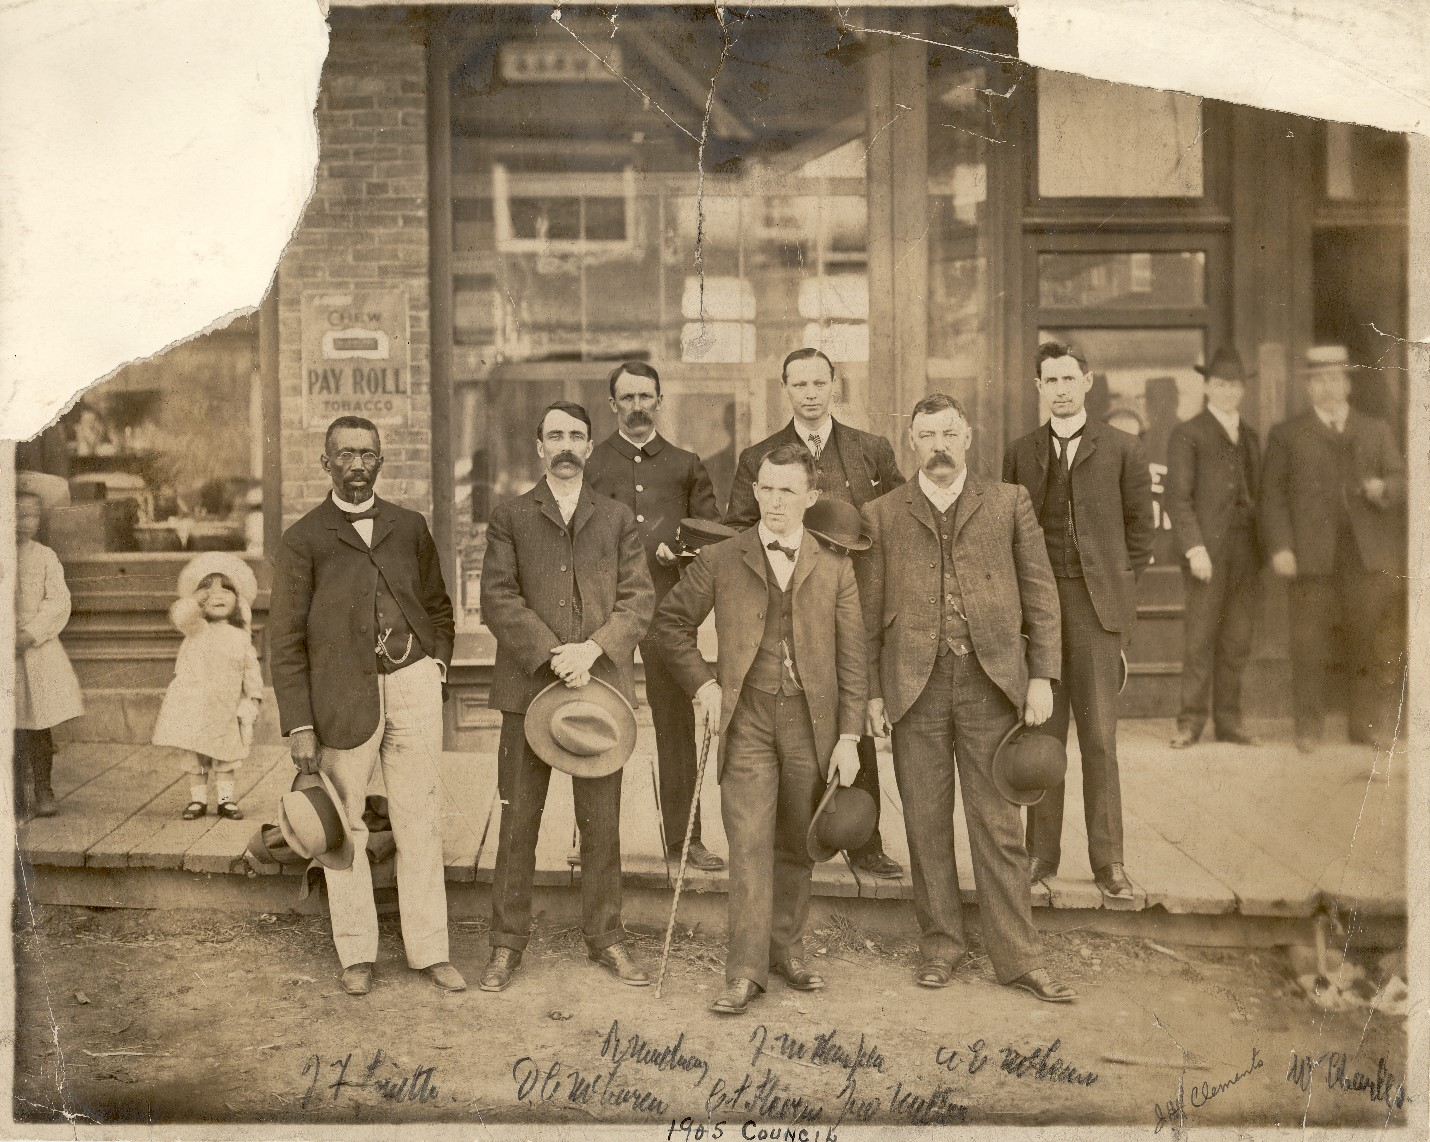 Black-and-white photograph of seven men in suits posing on a wooden sidewalk in front of a building entrance. Bystanders, including two men in suits and two unidentified young girls in white dresses and hats, appear in the background.